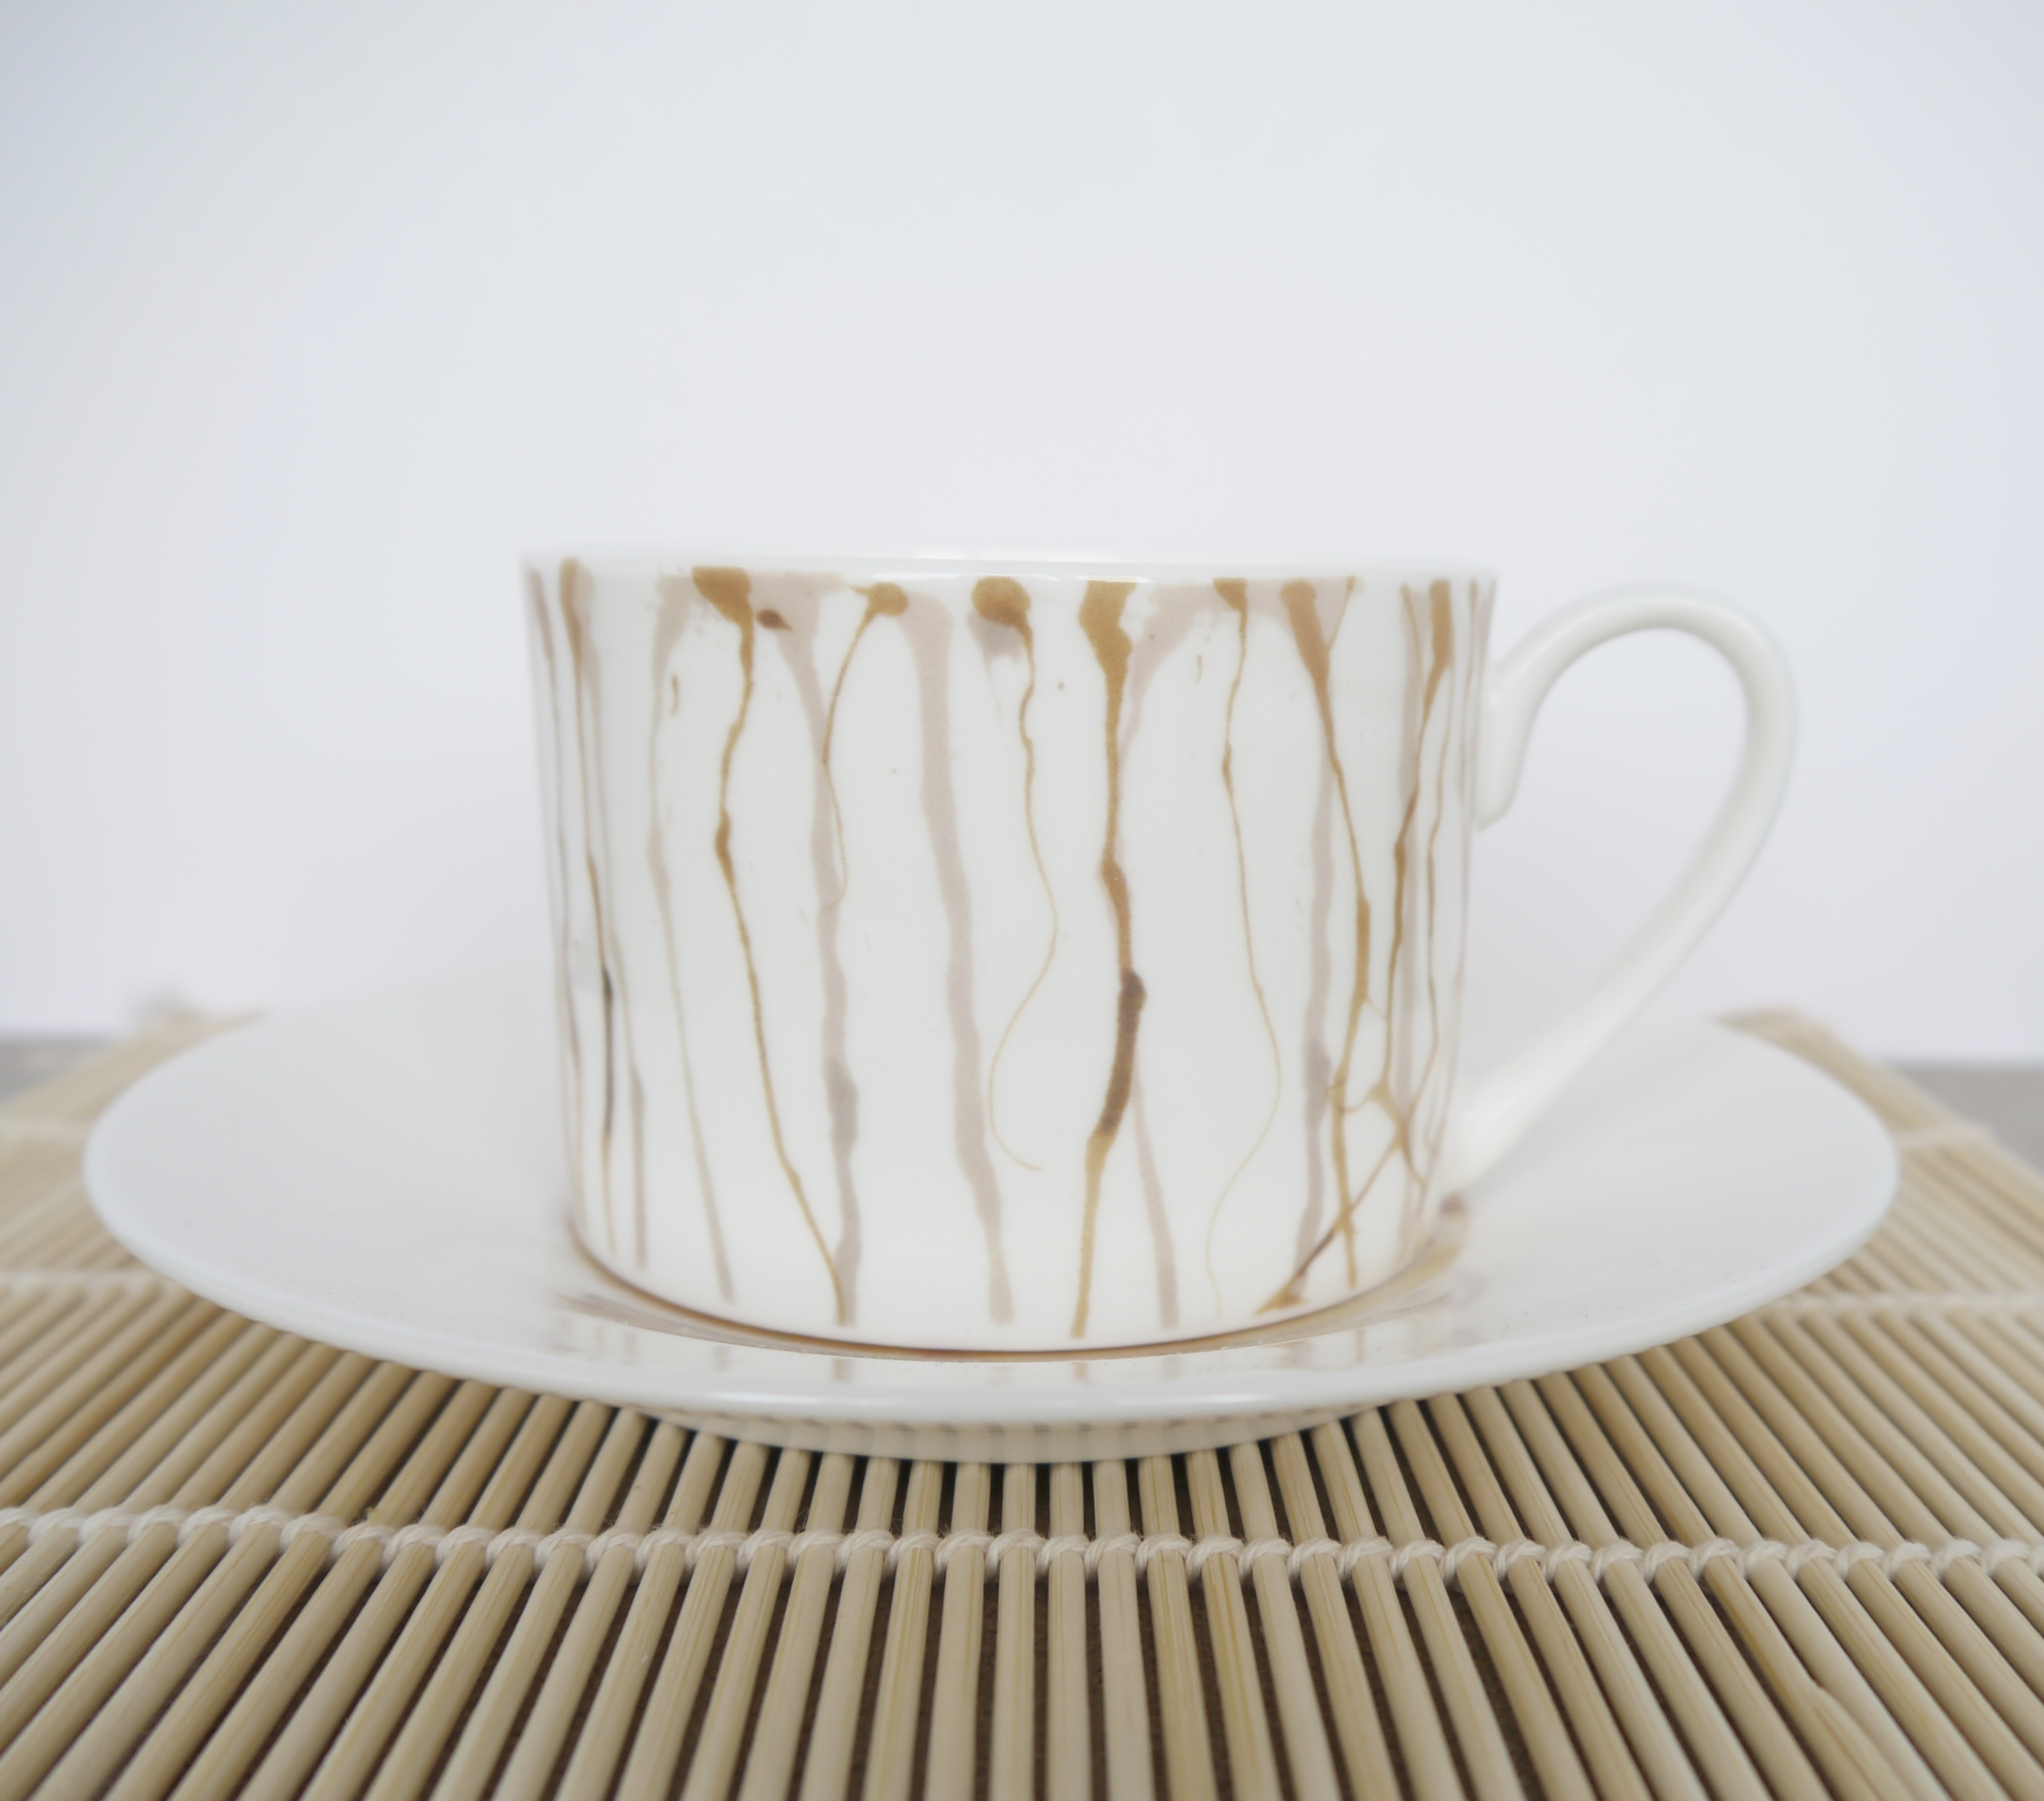 Bone china teacup and saucer with spill design - Victoria Mae Designs